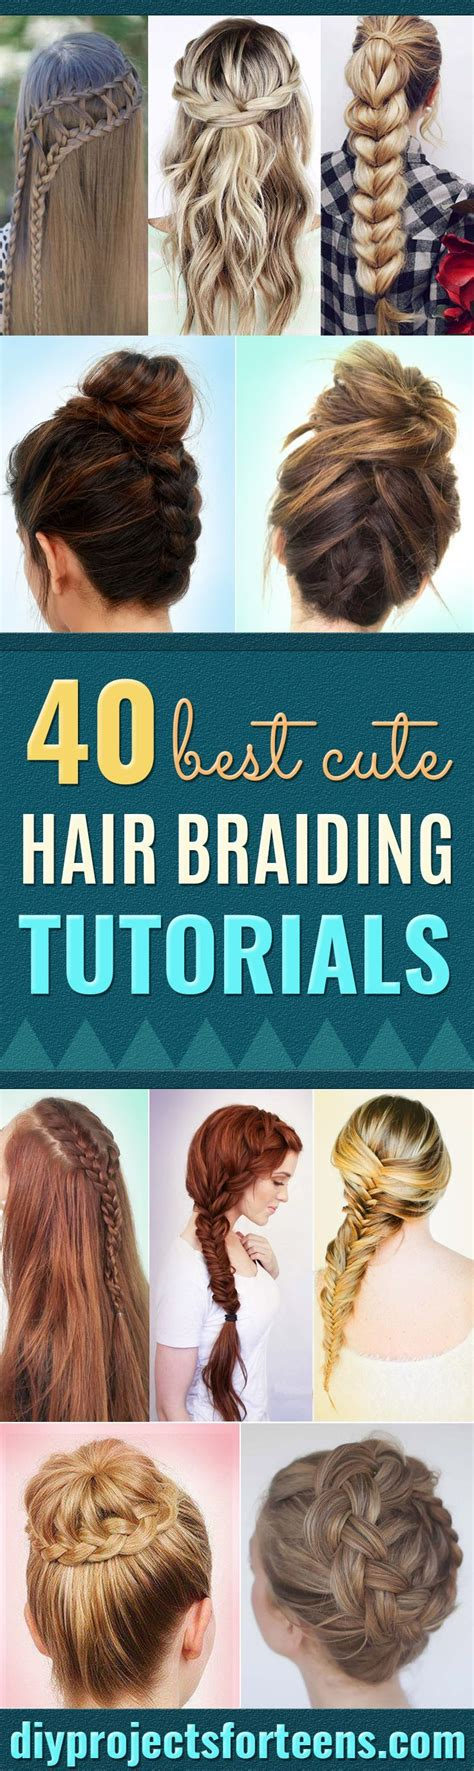 Hairstyles For School Step By Step Easy by Easy Step By Step Hairstyles For School Best Hair